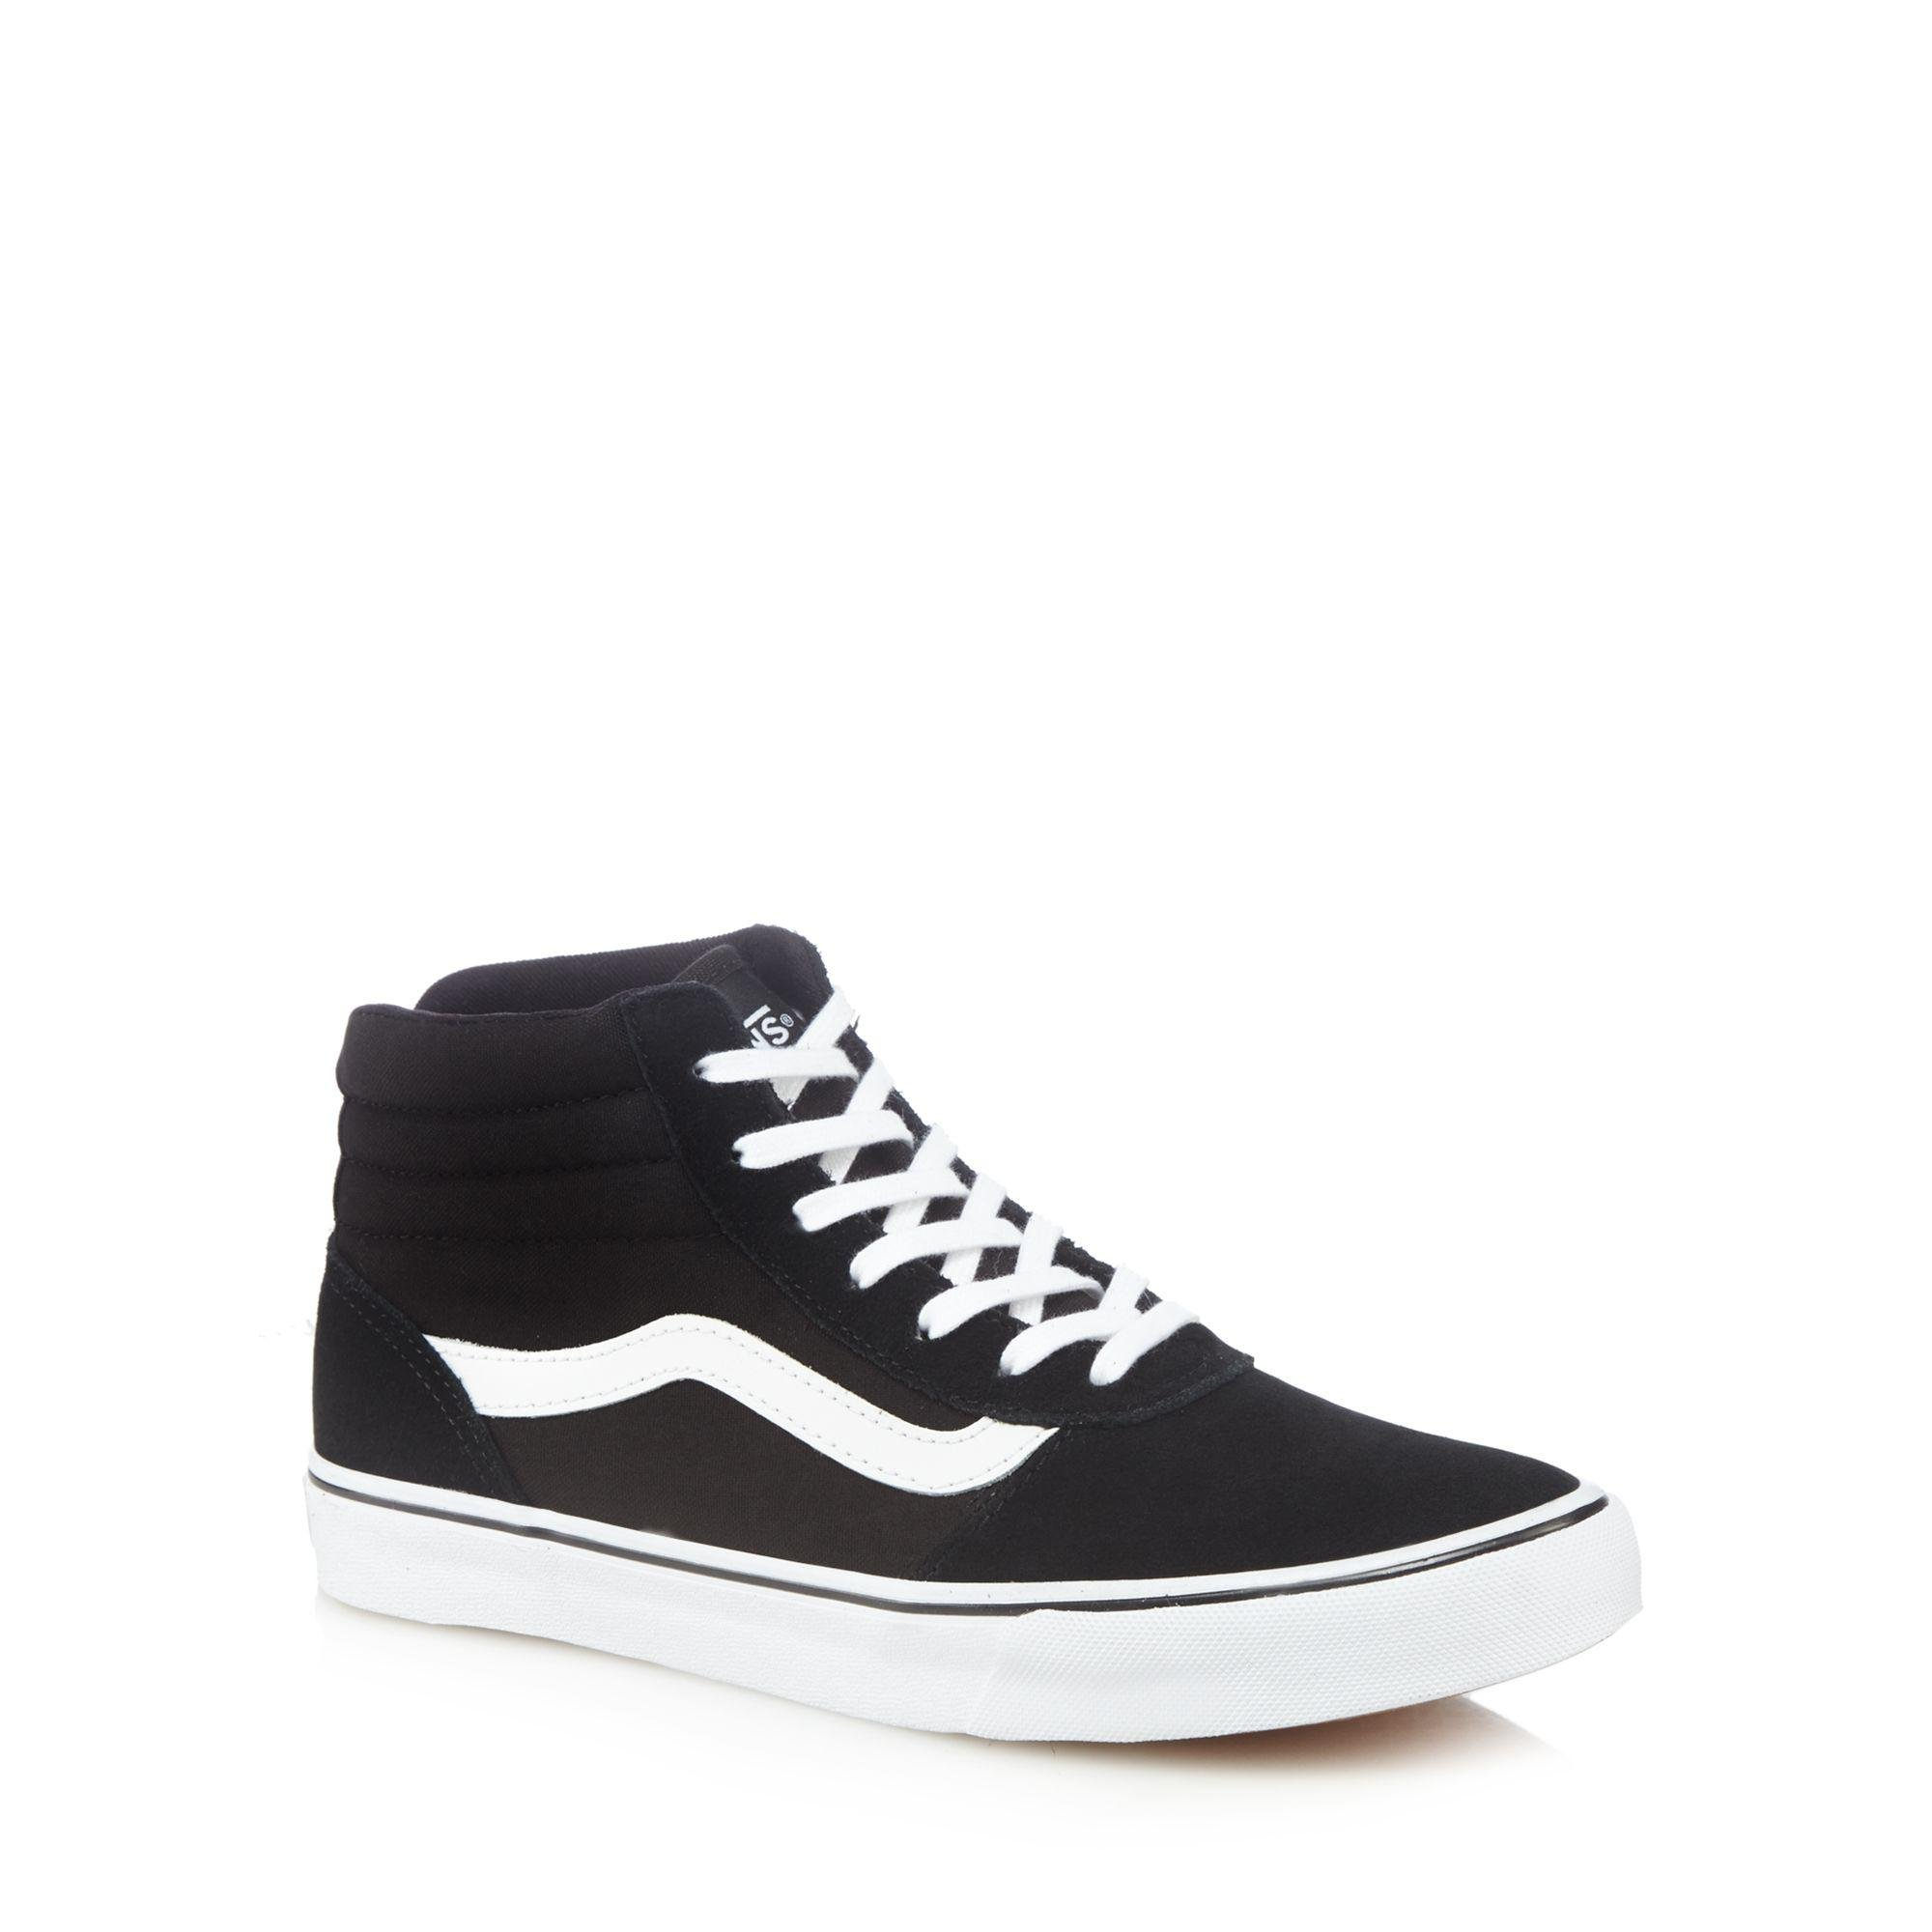 Inexpensive sale online Black 'Maddie' high-top trainers buy cheap 2014 clearance low cost outlet footlocker finishline outlet in China KR5UnoLH